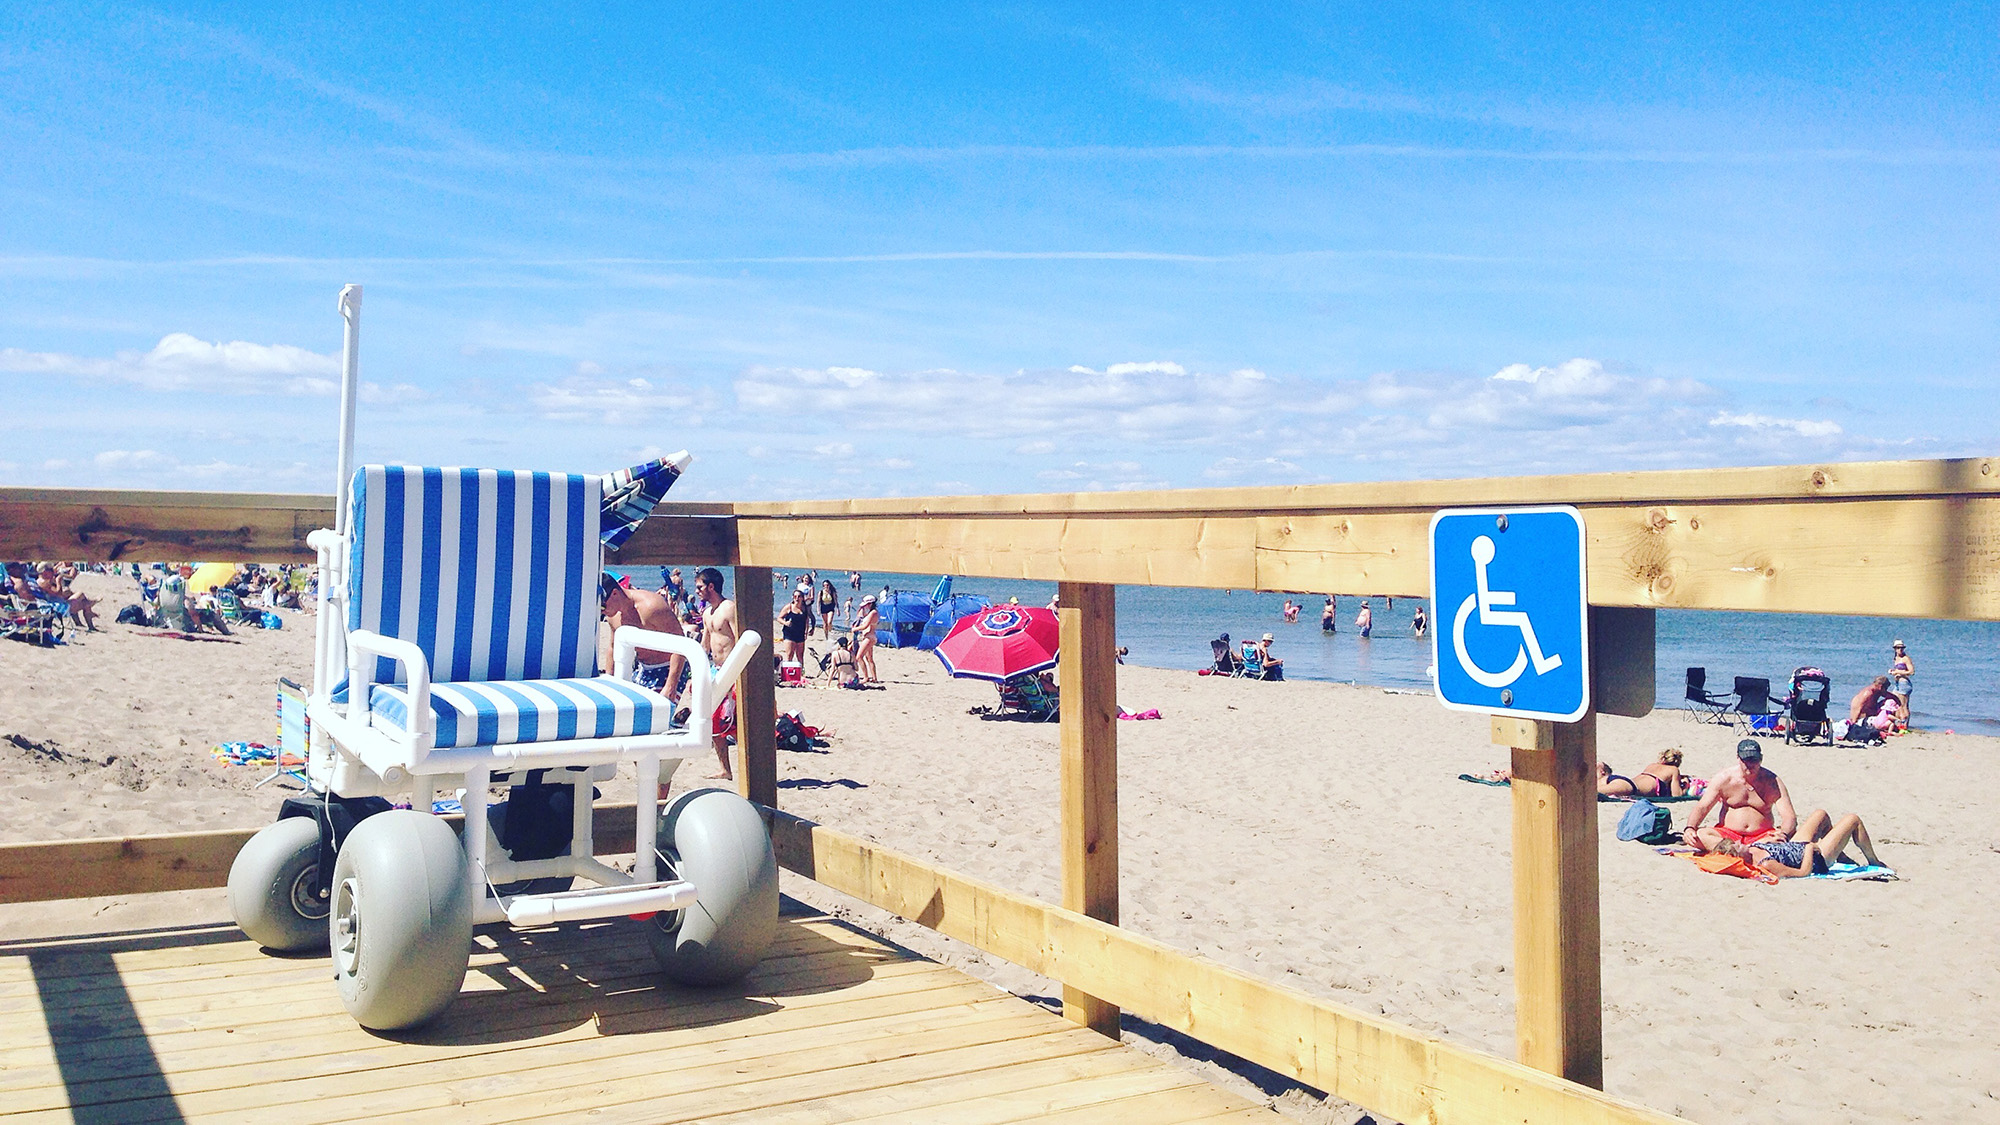 beach wheelchair sits on boardwalk with the beach in the background